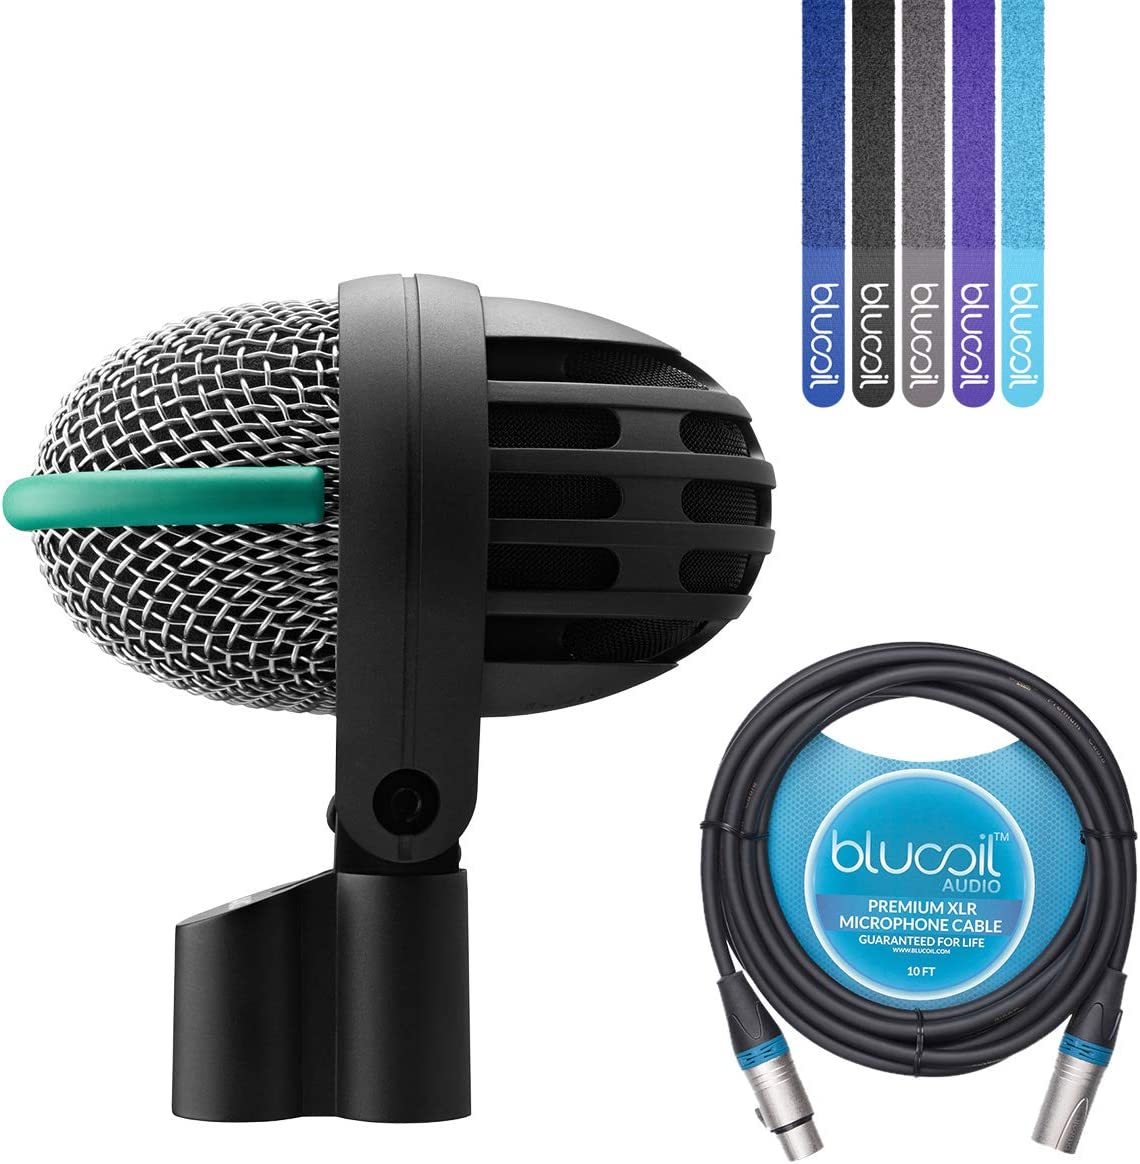 AKG D112 MKII Dynamic Microphone for Bass Drums Bundle with Blucoil 10-FT Balanced XLR Cable, and 5-Pack of Reusable Cable Ties: Home Audio & Theater